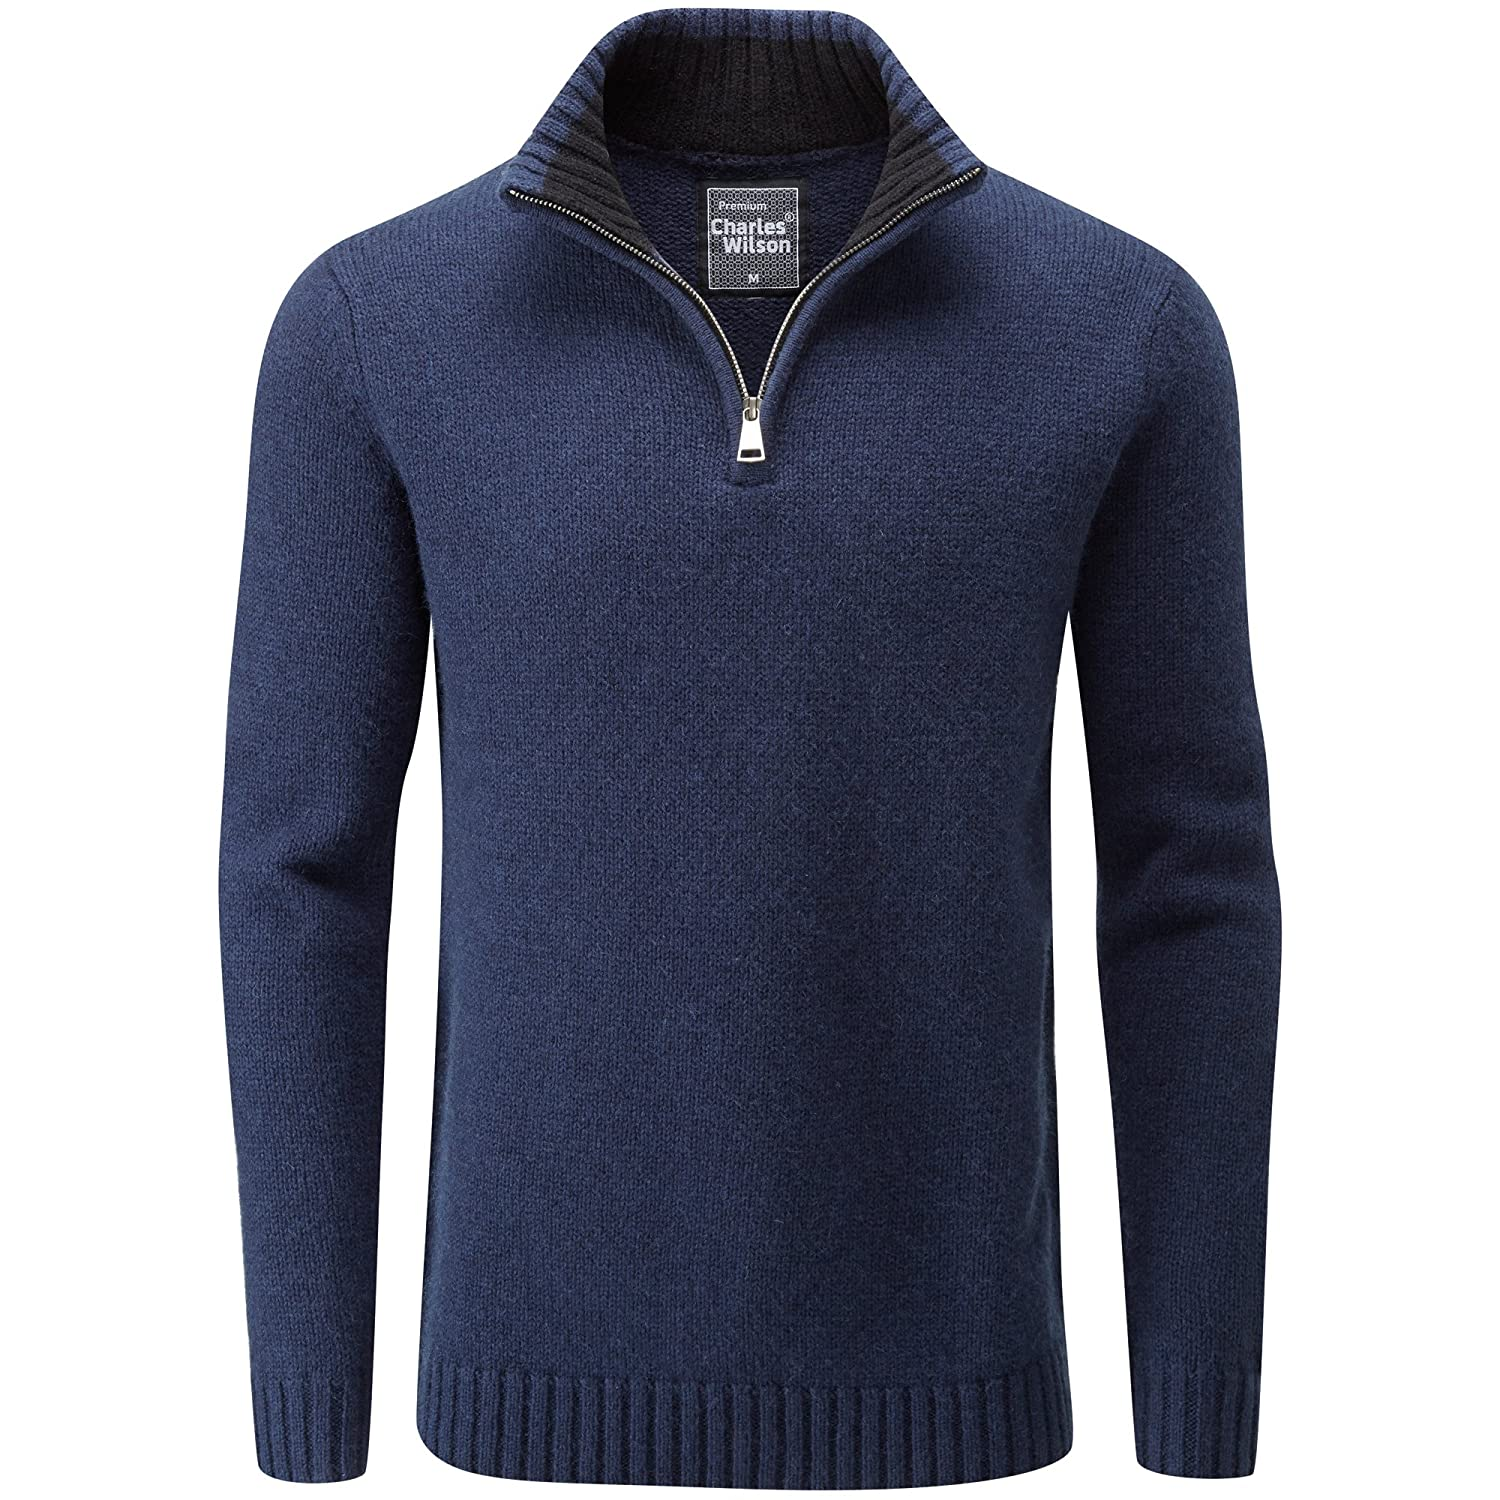 Charles Wilson Premium Blend Zip Neck Jumper